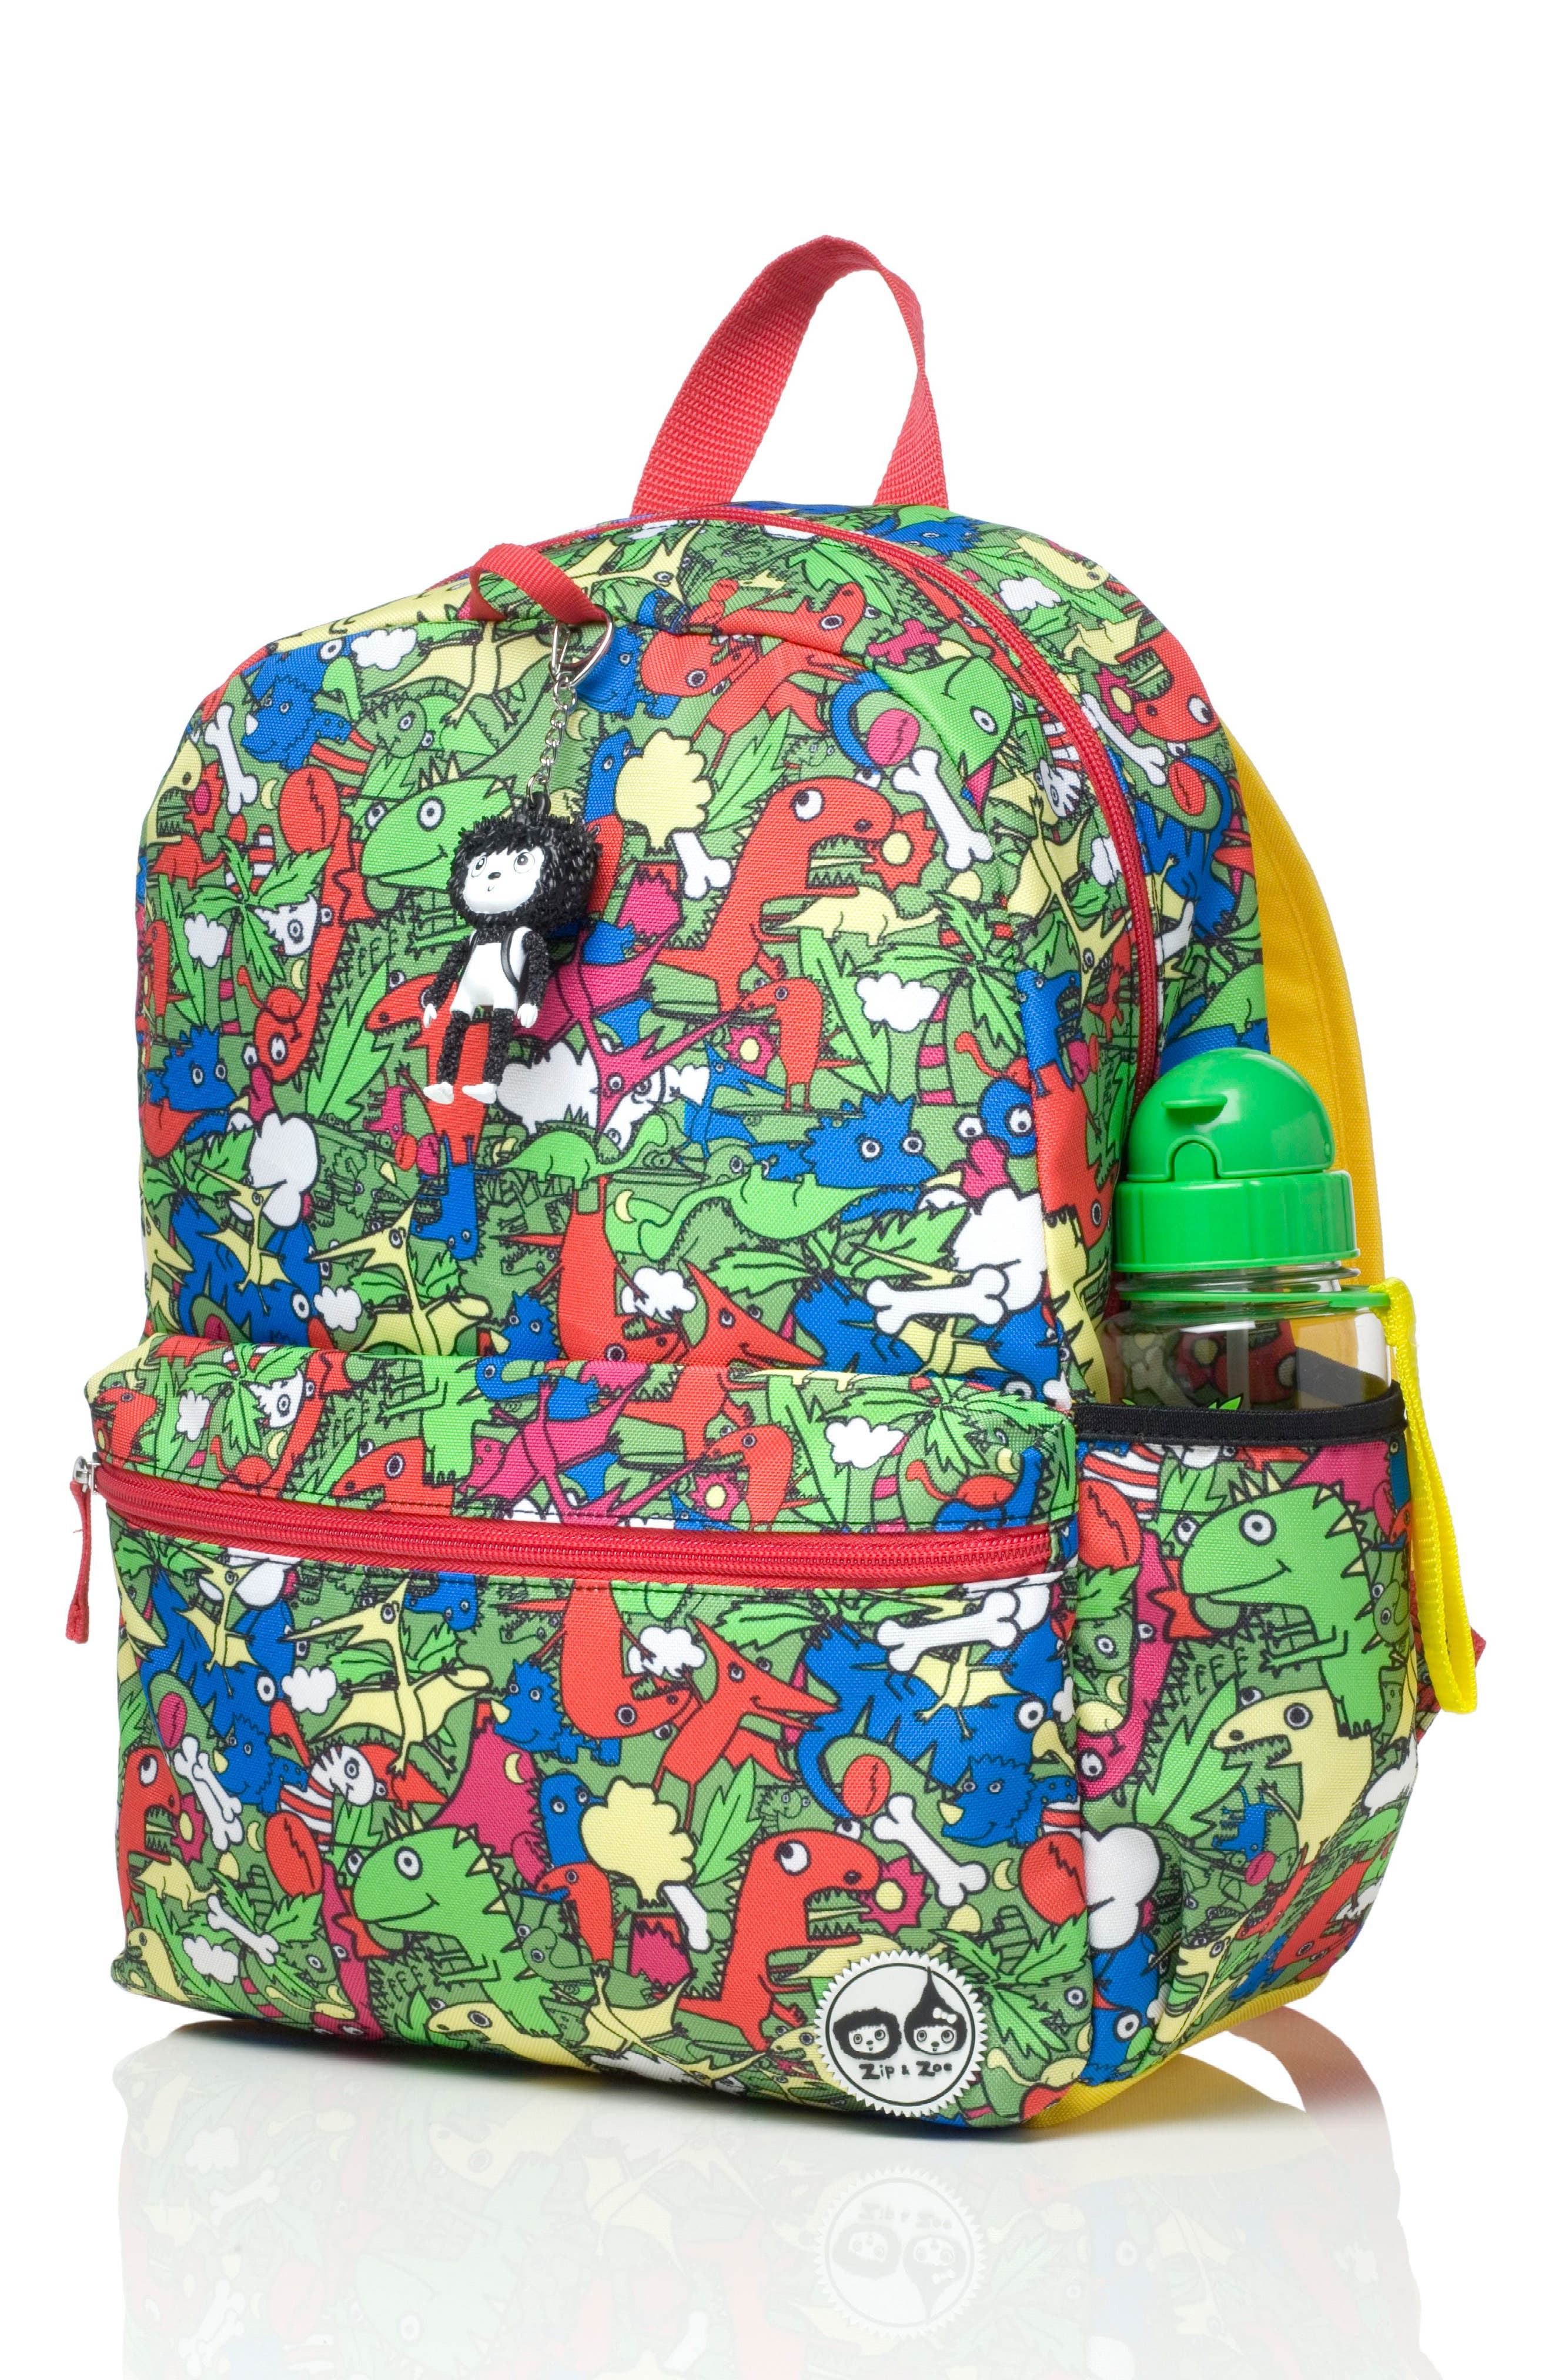 Zip & Zoe Junior Backpack Set,                             Alternate thumbnail 3, color,                             Dino Multi/ Dylan